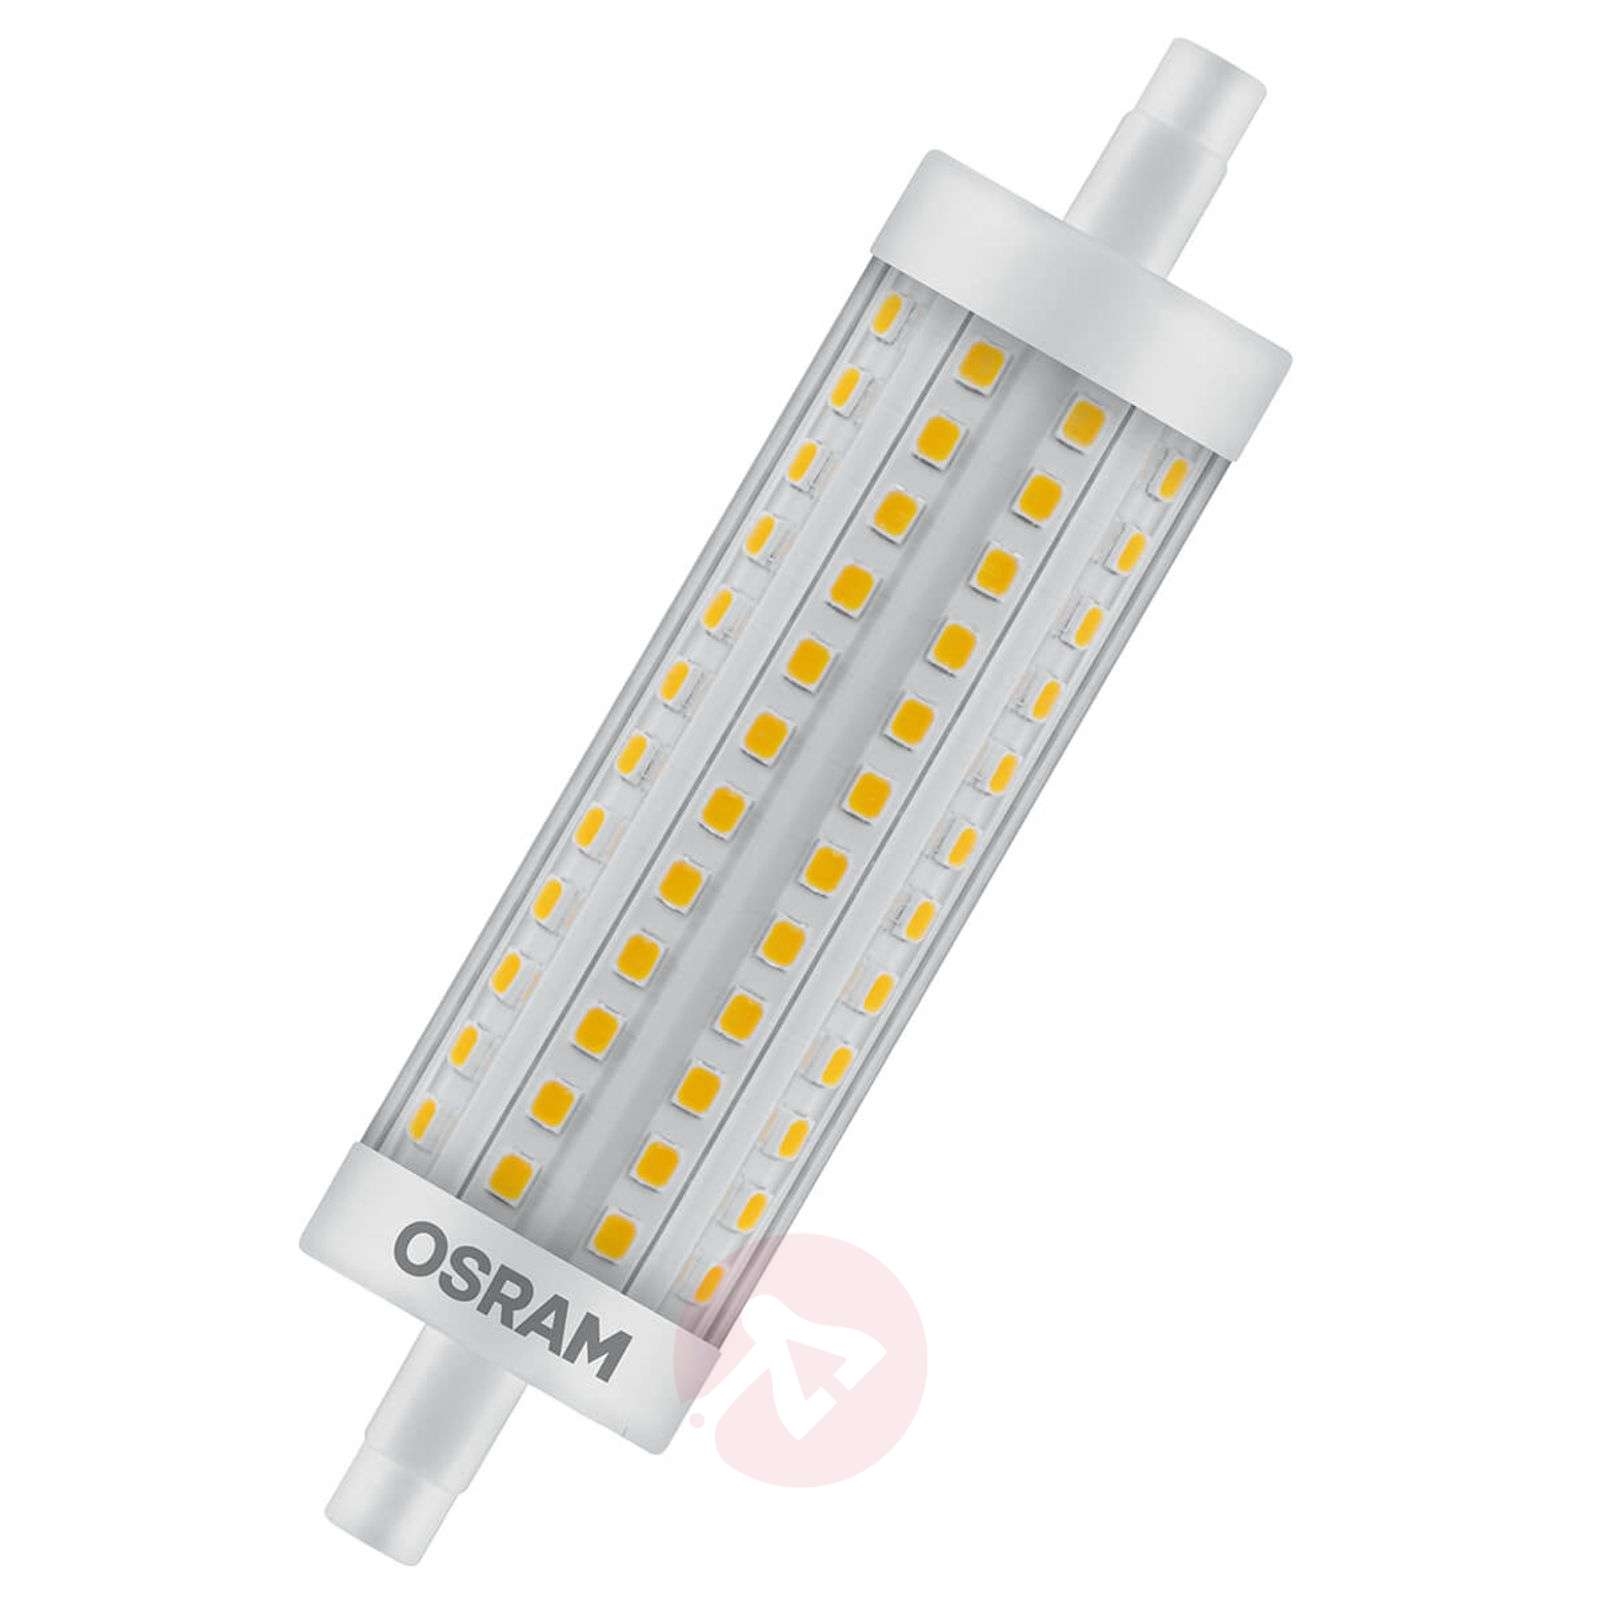 Tube LED R7s 15W, blanc chaud, dimmable-7262073-01